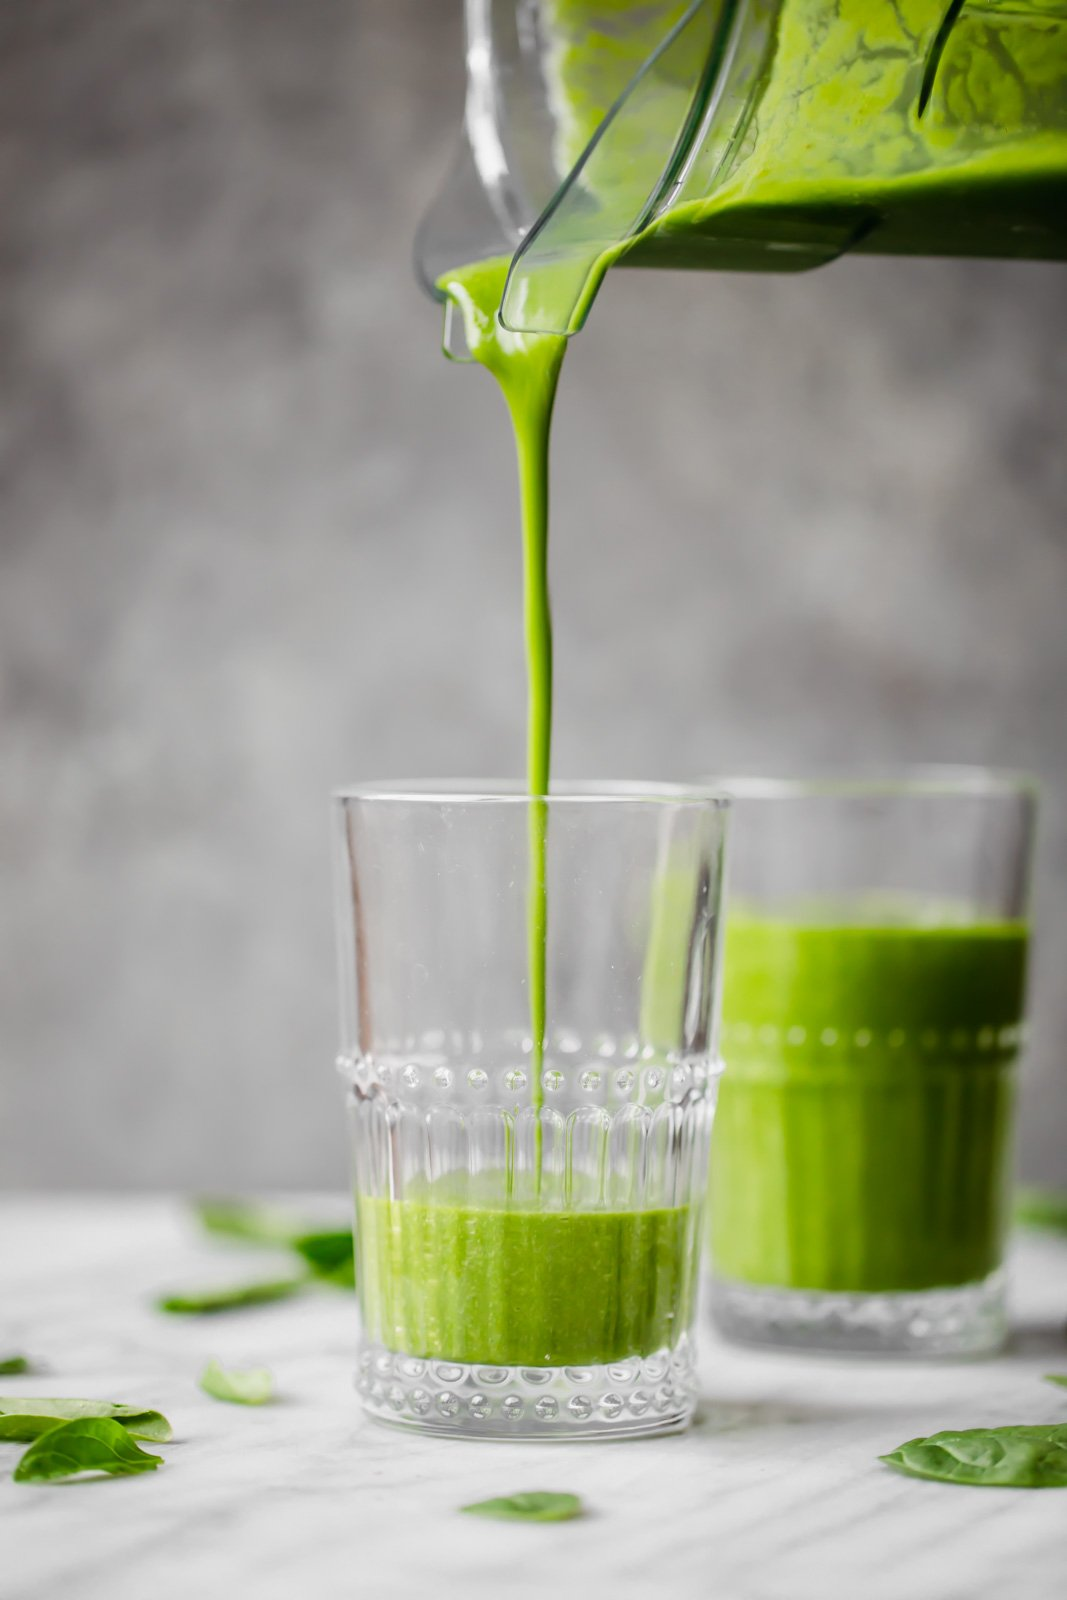 pouring a green, immune boosting wellness smoothie into a glass